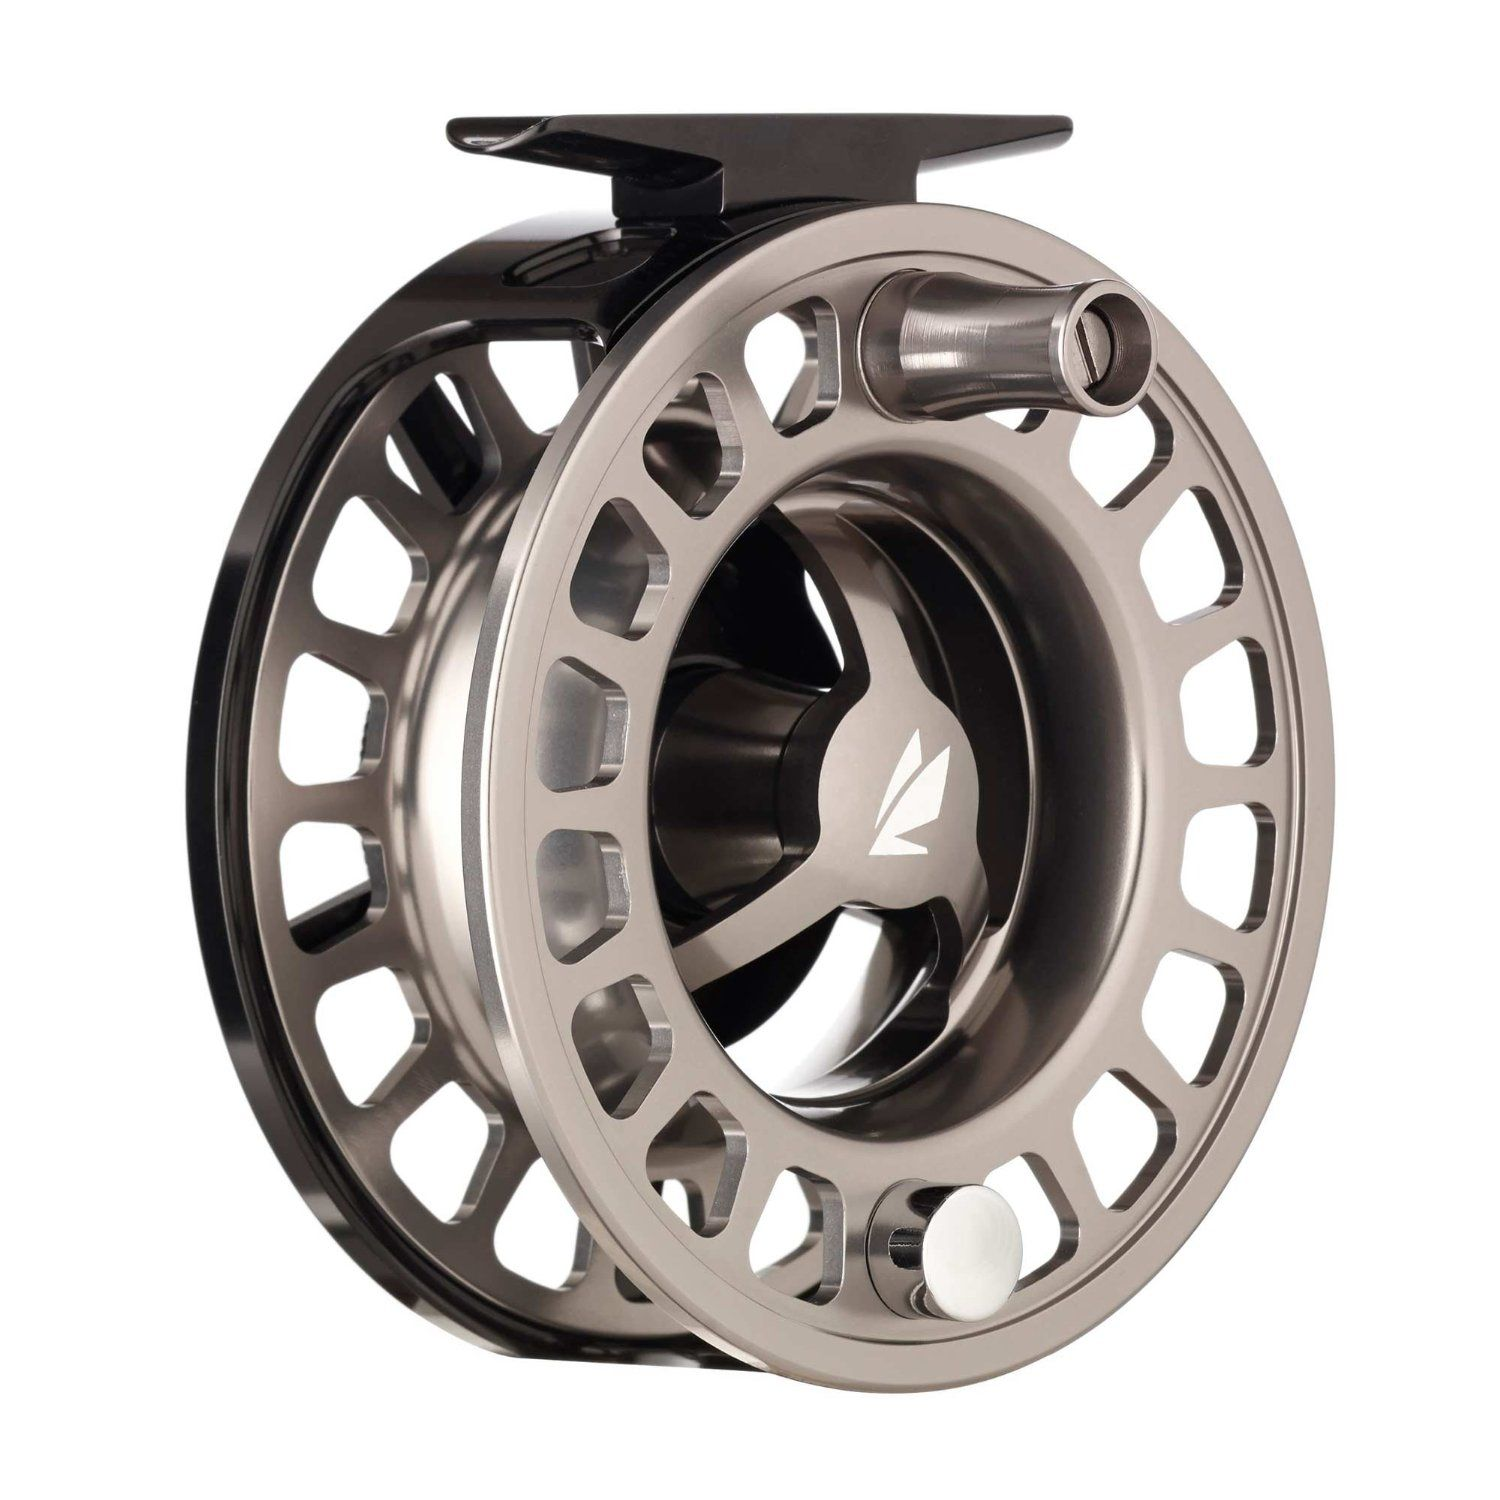 Sage 3200 Series Fly reel.  For more information about this and other reels check out www.theflyreelguide.com  #Flyreels #sage